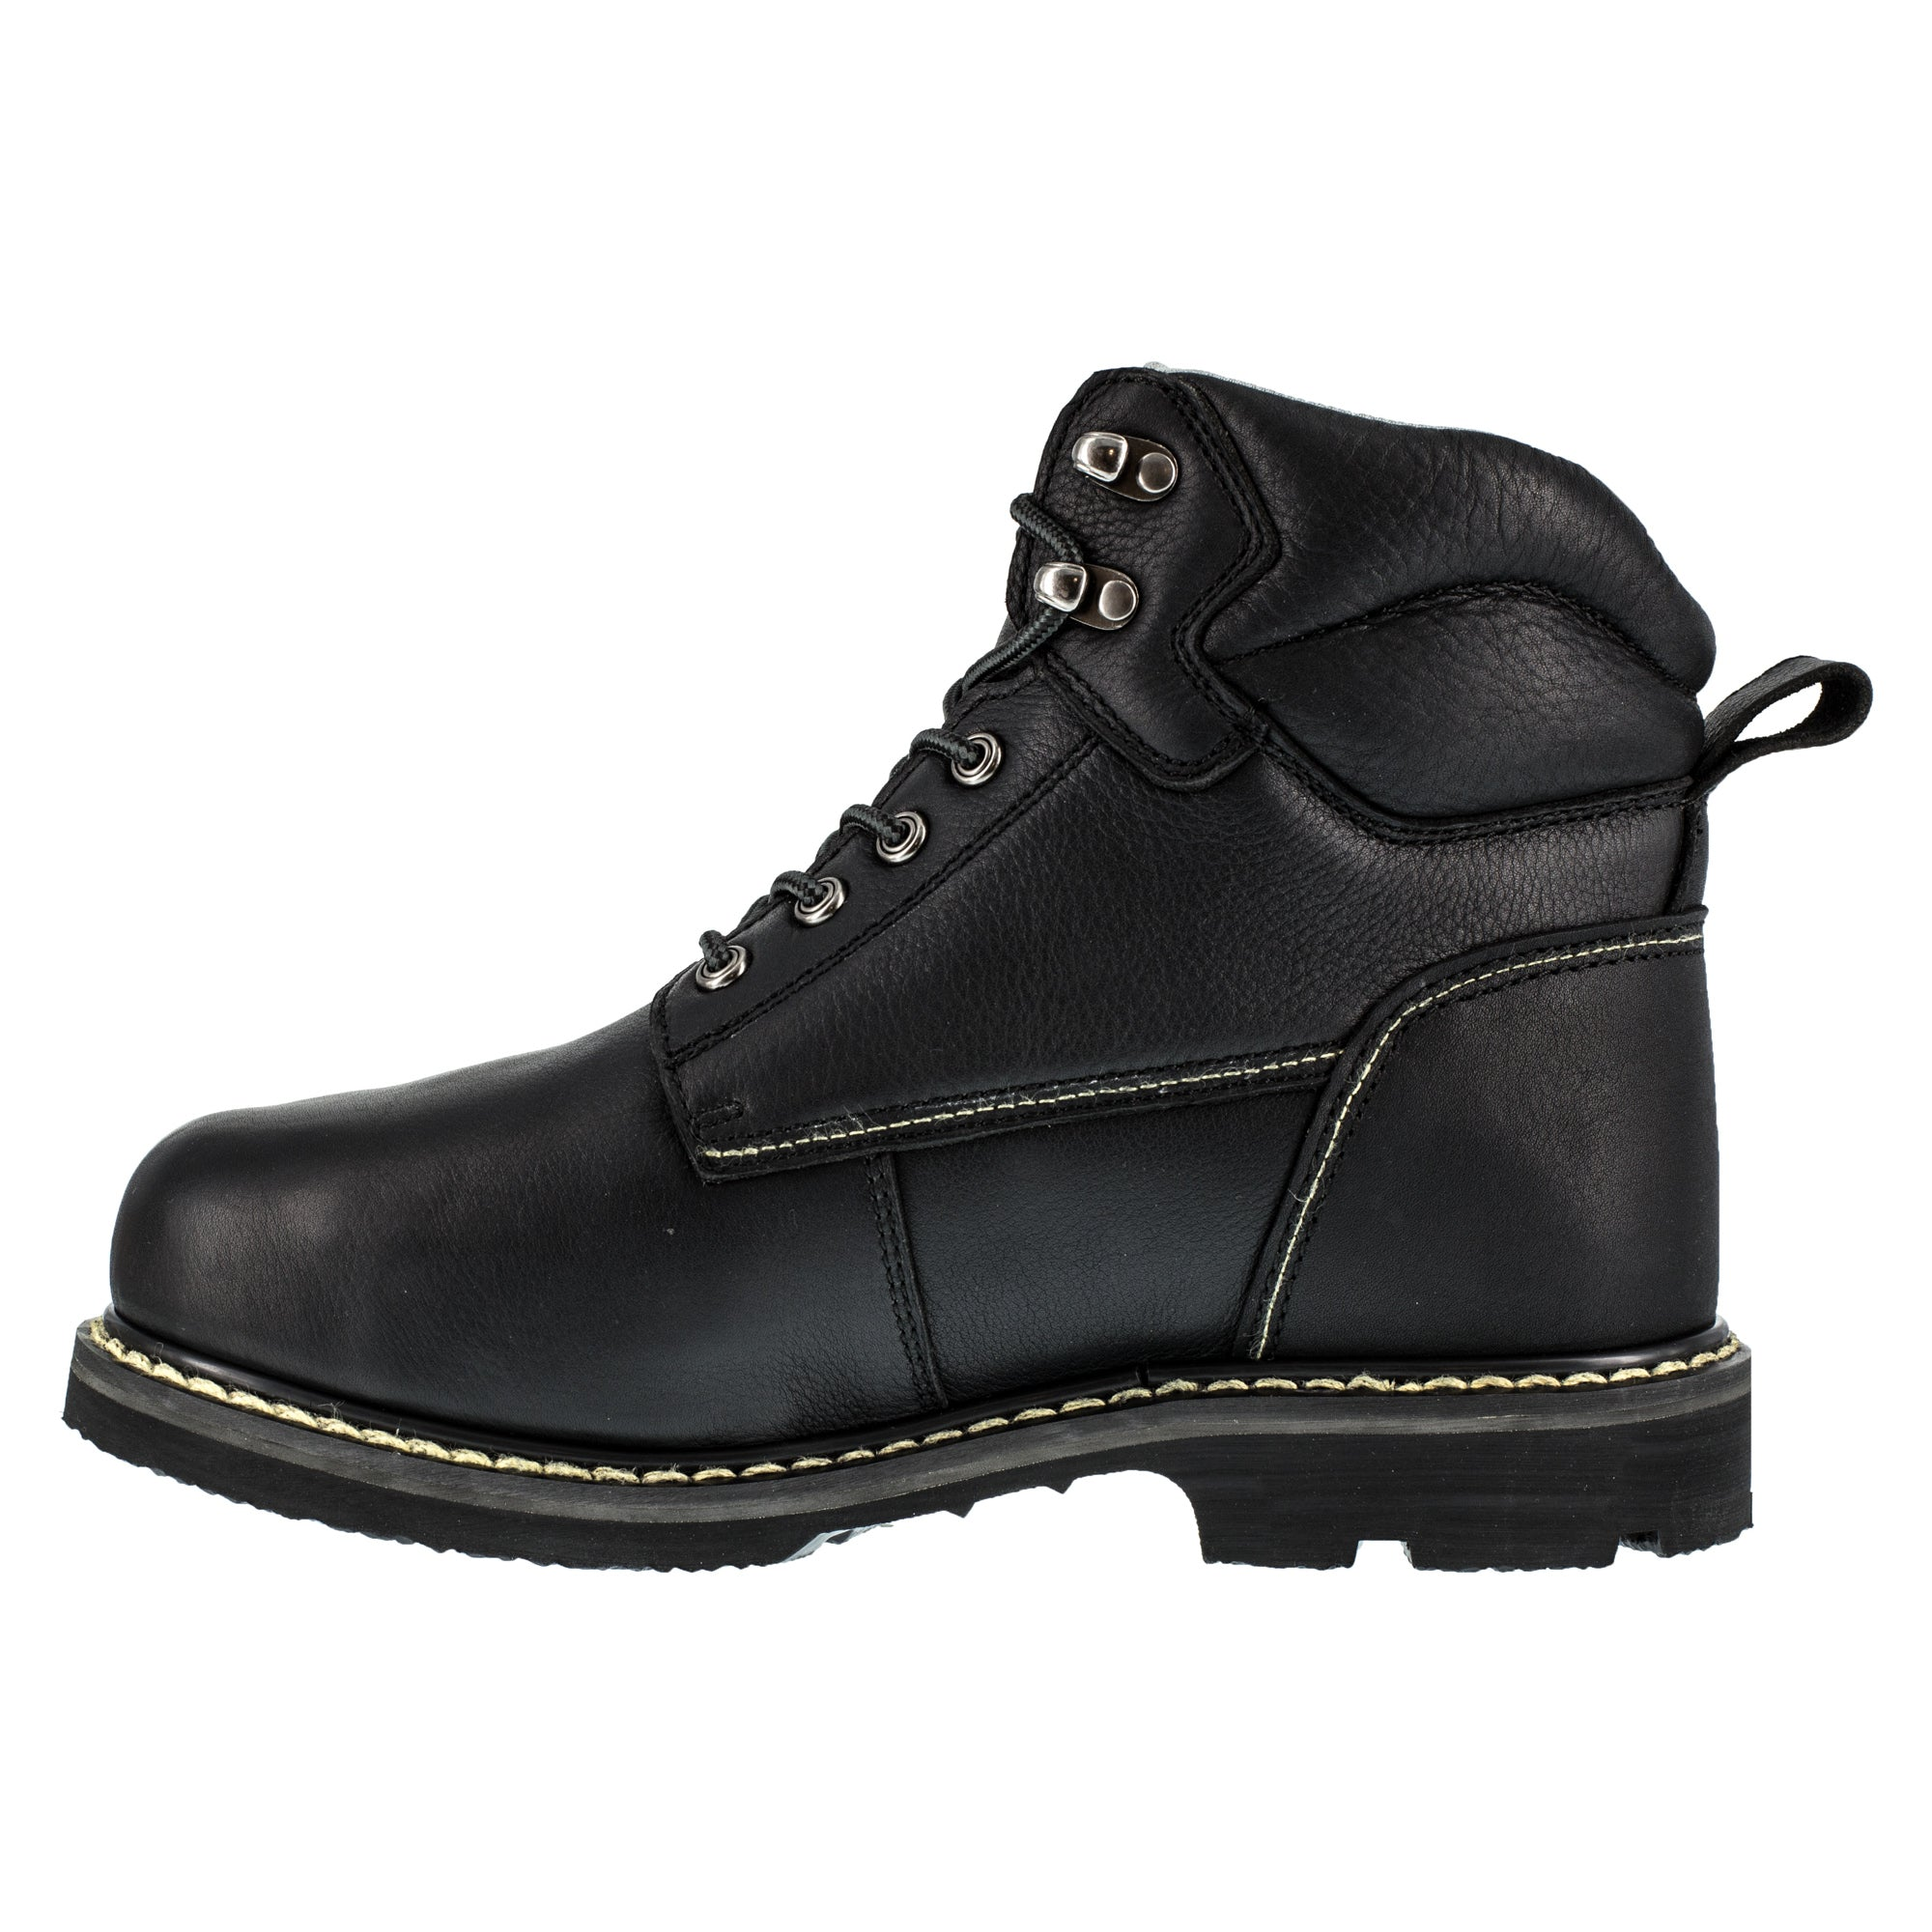 Iron Age Mens Black Leather Work Boots Groundbreaker 6in External Metg The Western Company